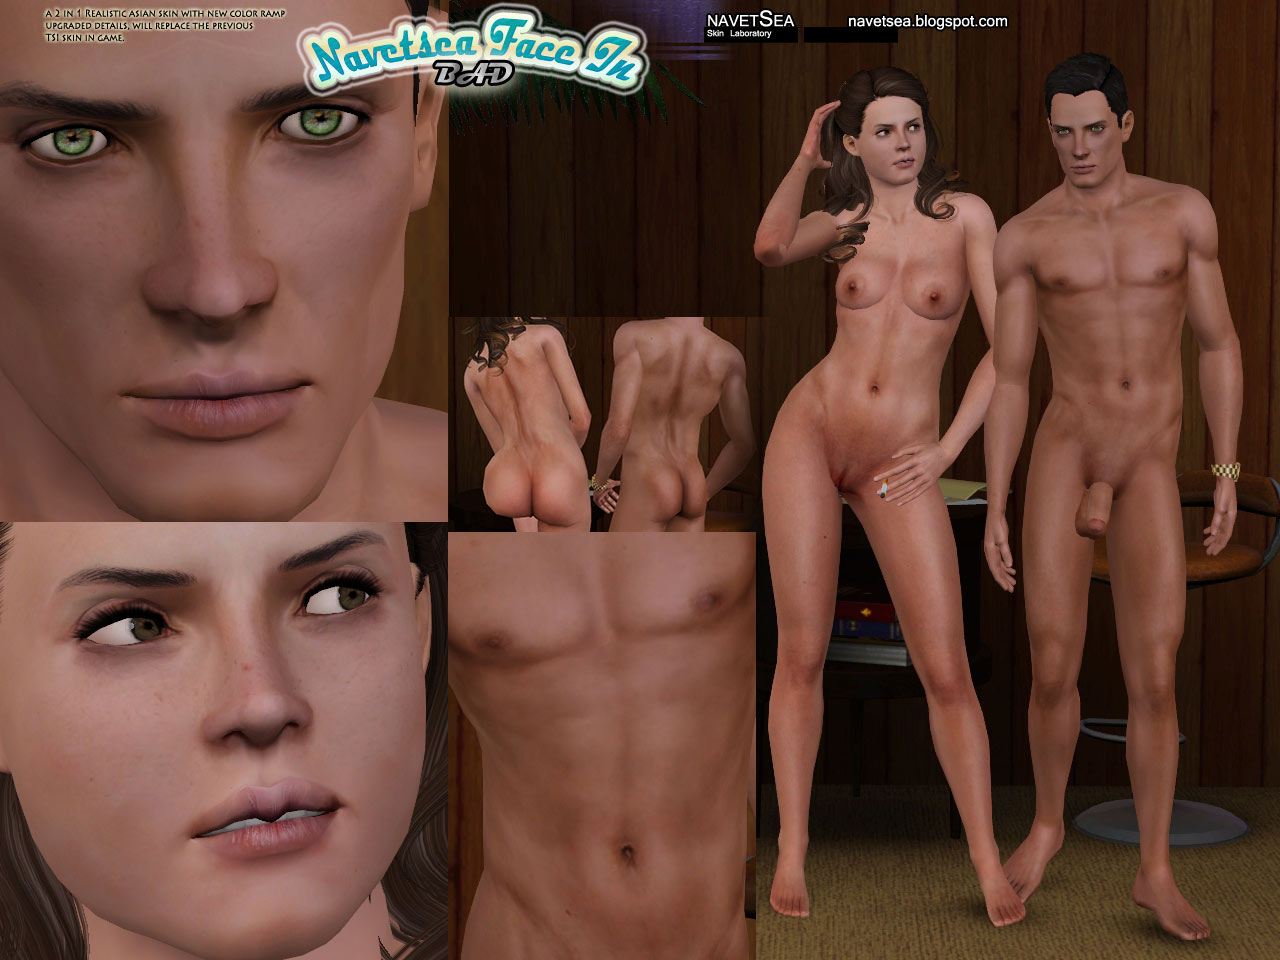 Naked sims in game nude movie